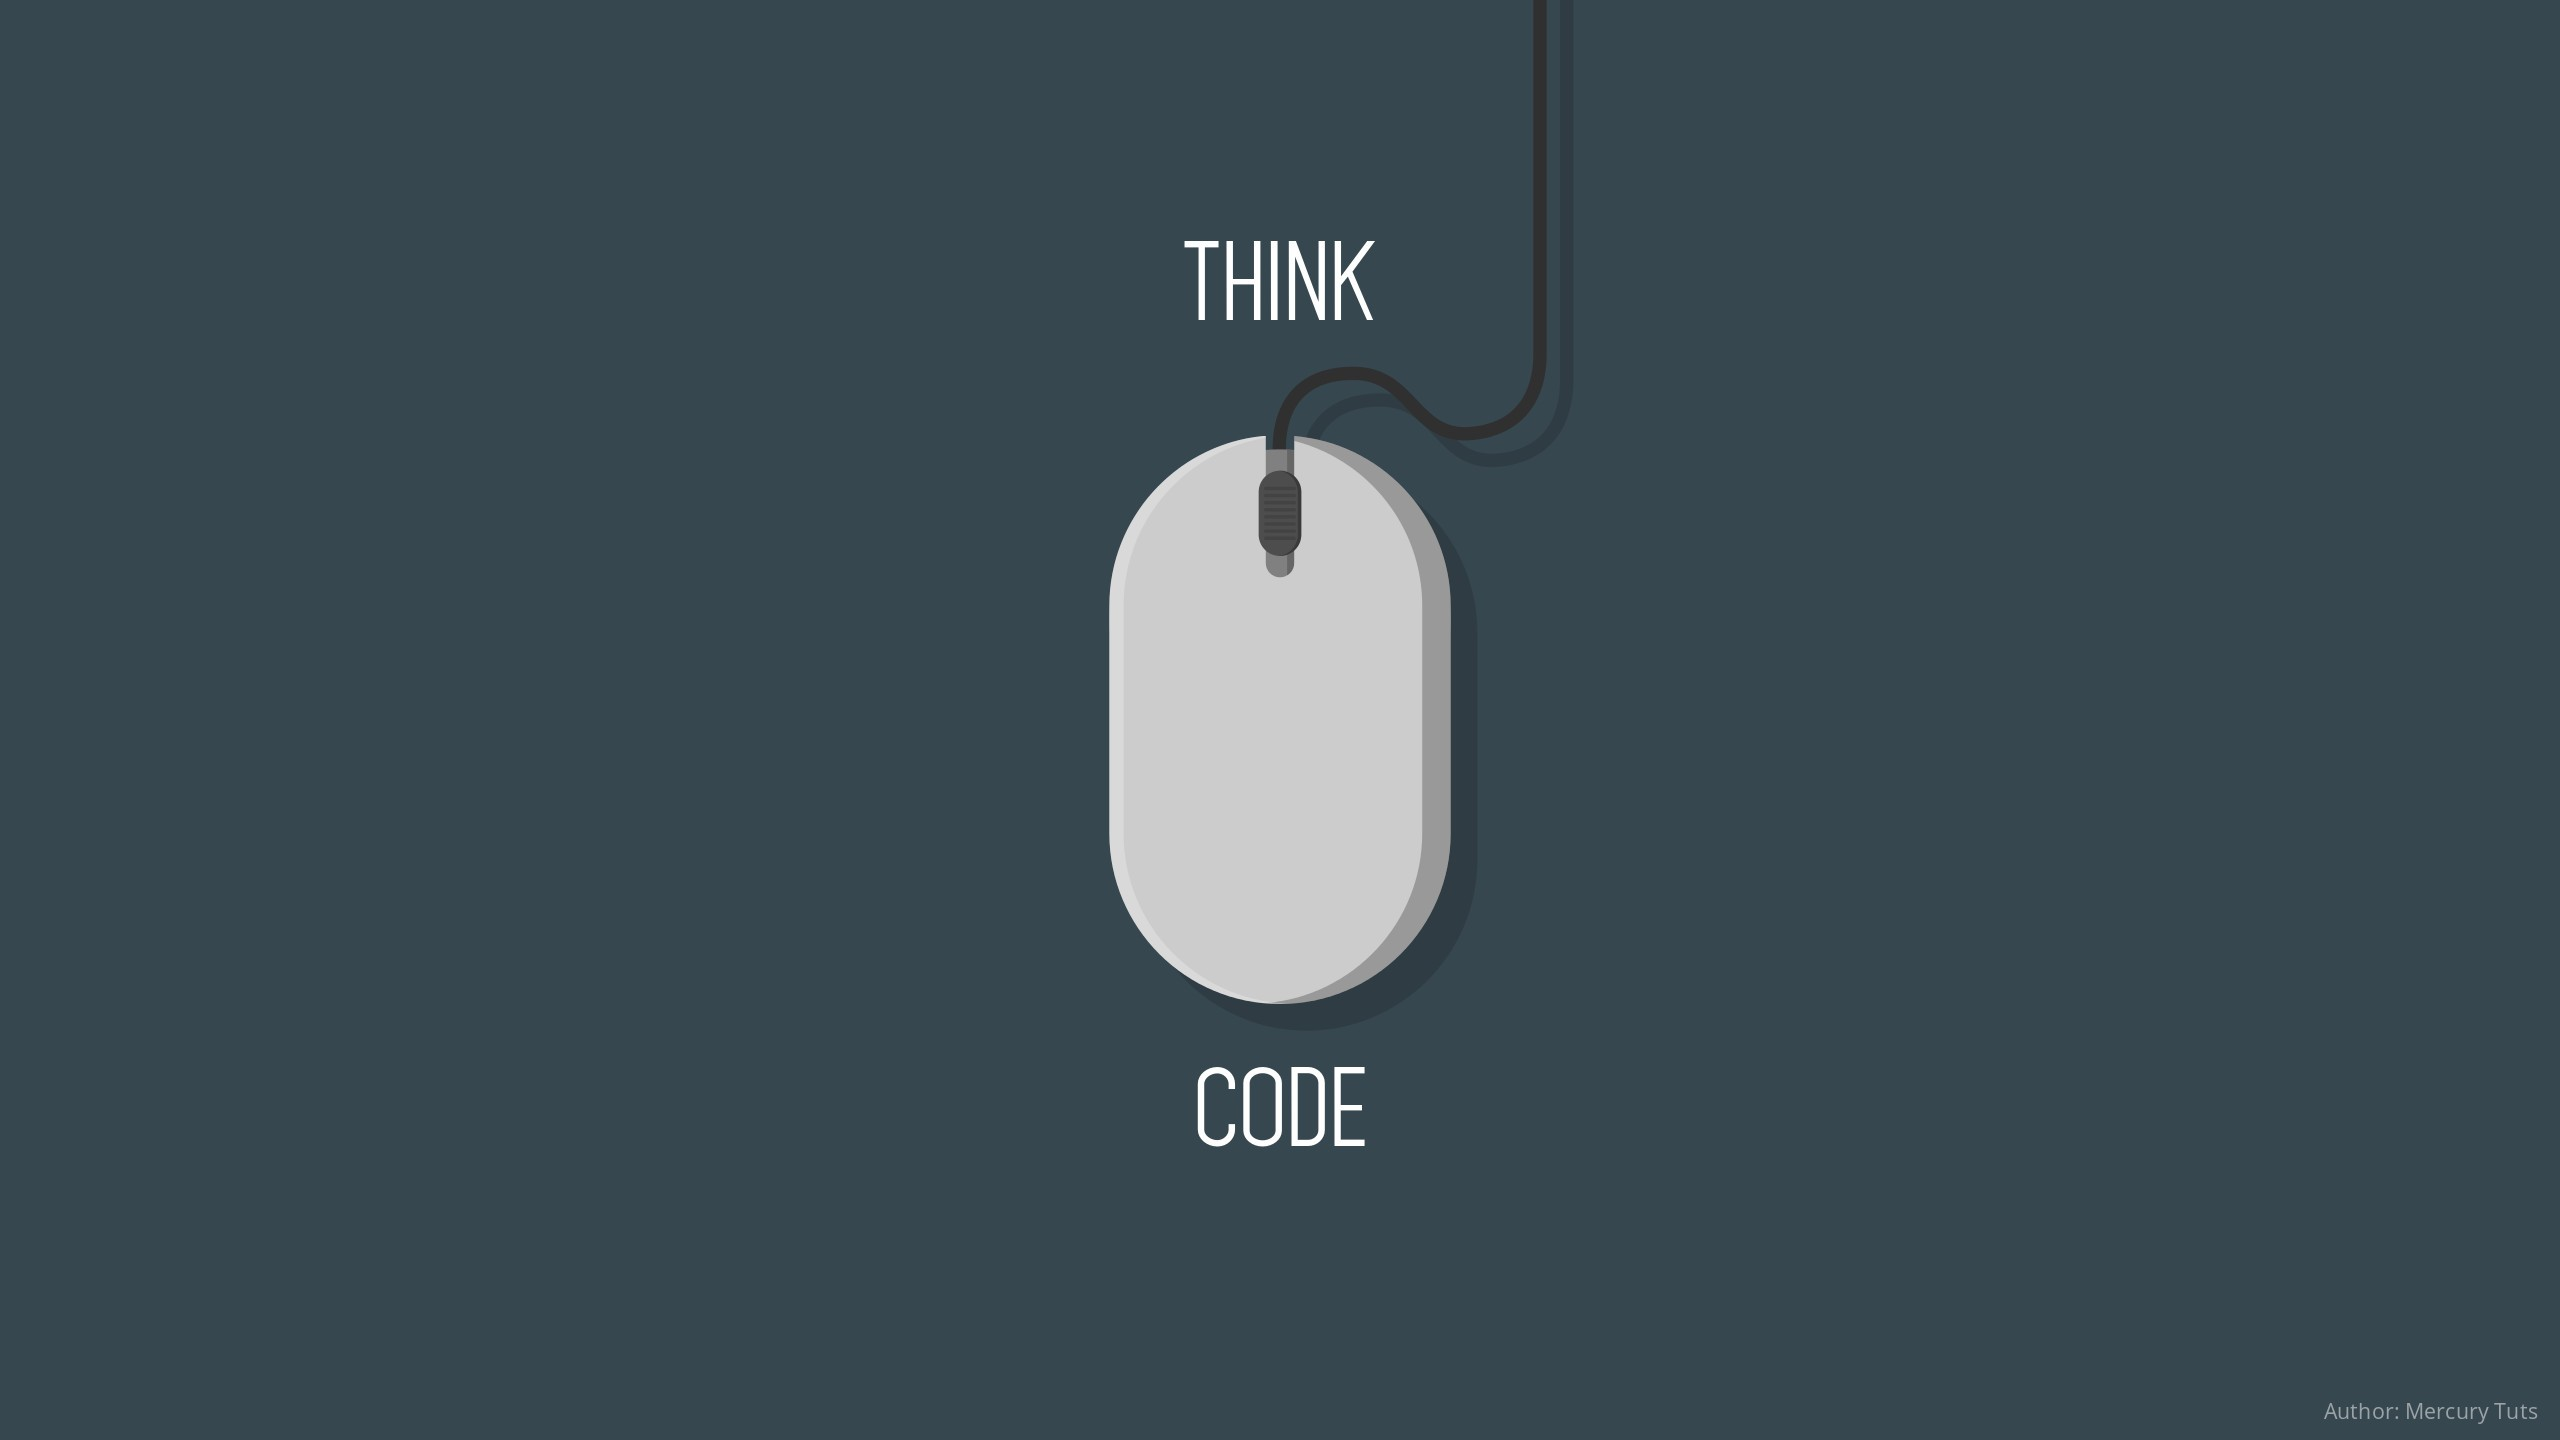 Code wallpaper download free high resolution wallpapers for Wallpaper sources